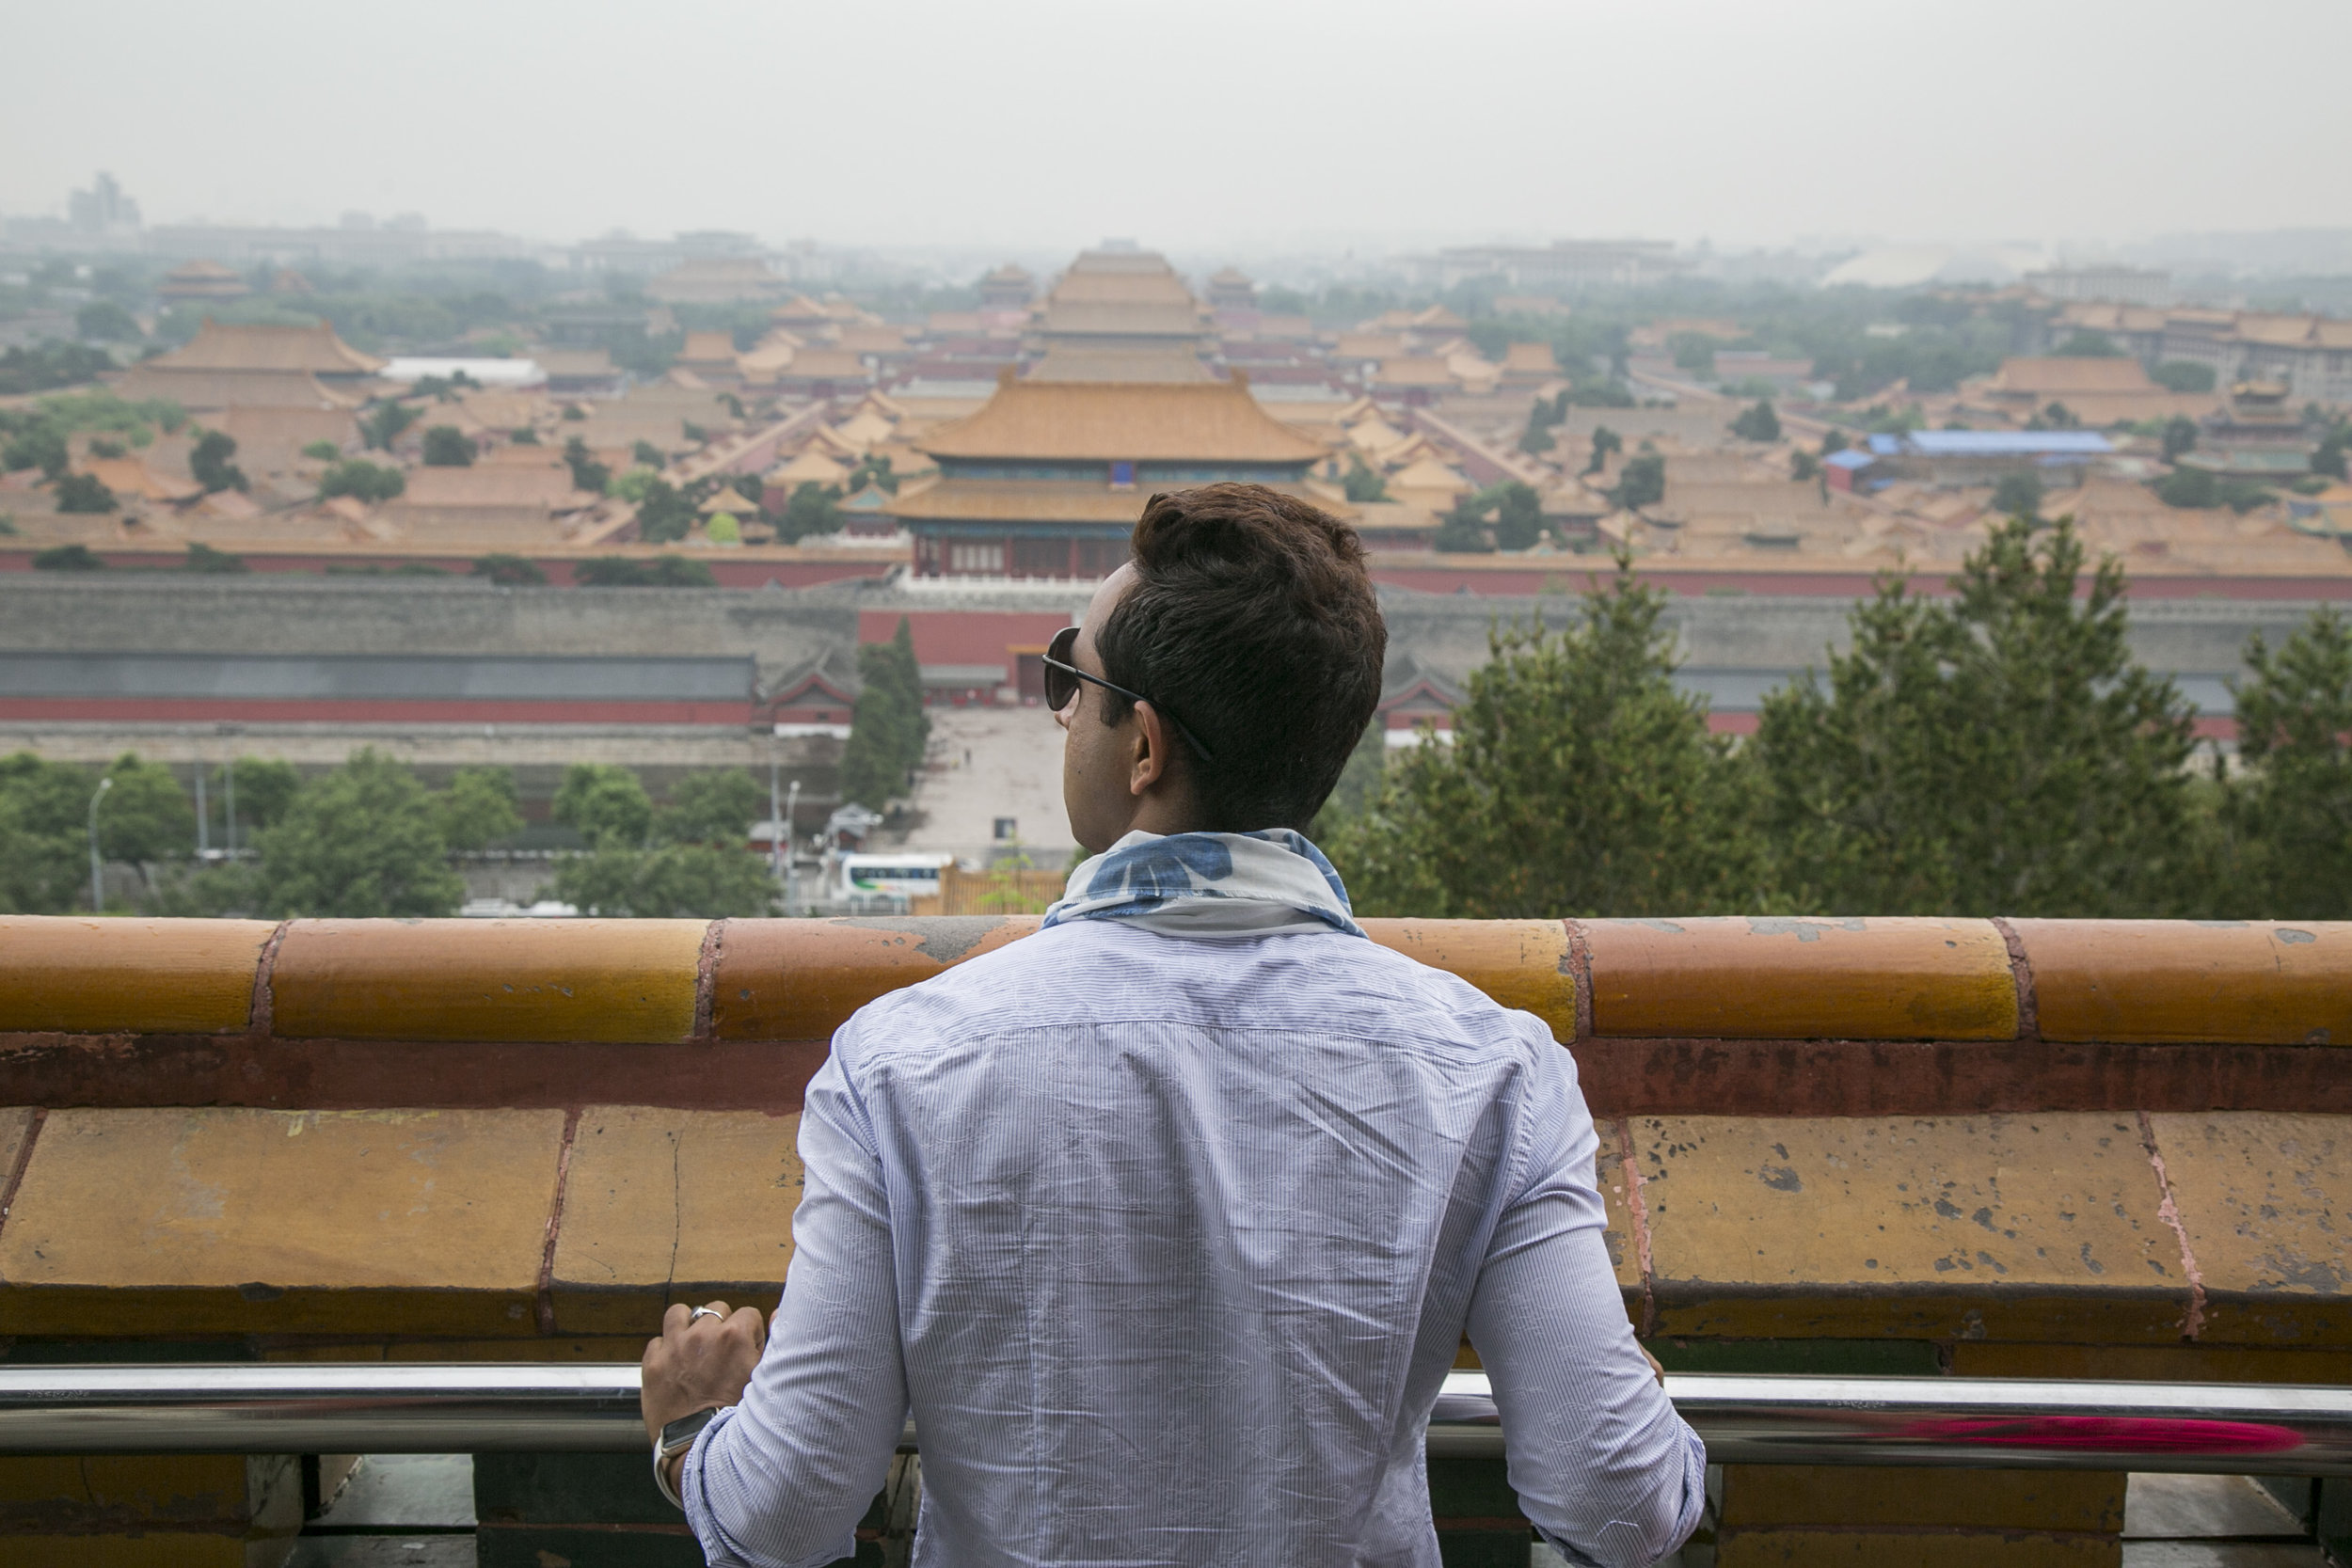 Photo by: Shoot My Travel Photographer Lily in Beijing